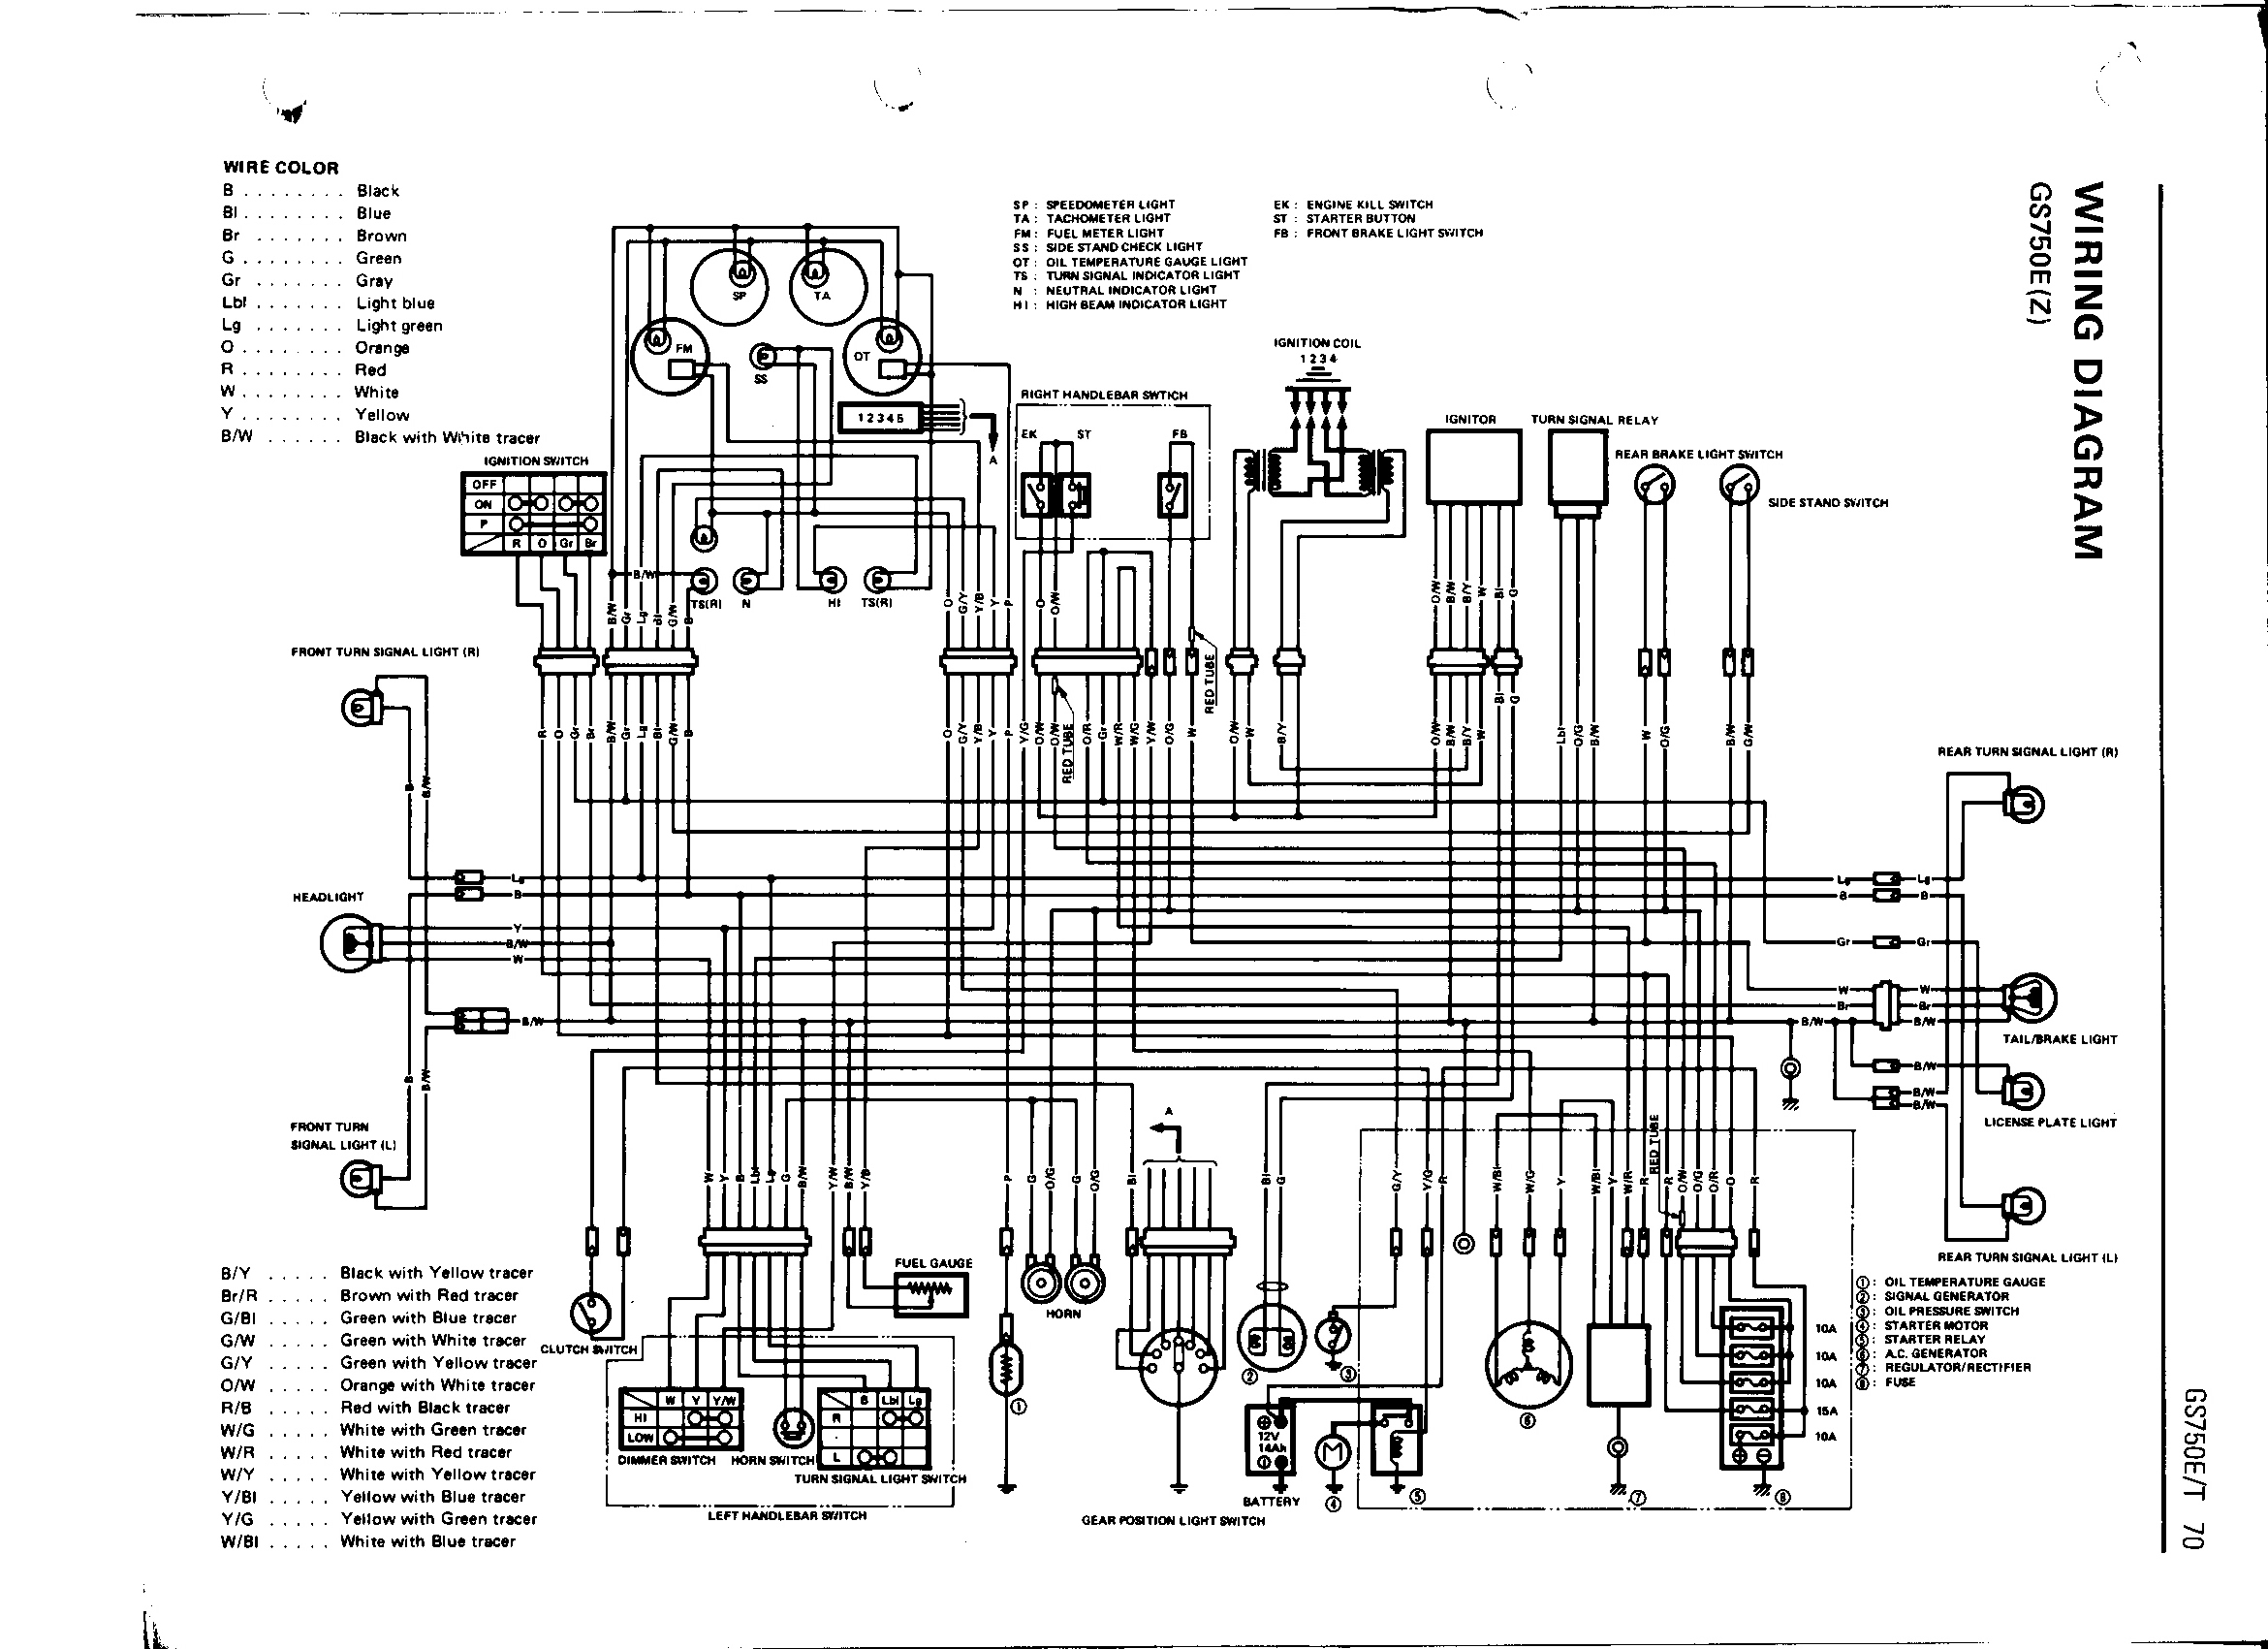 1980 gs450 wiring diagram